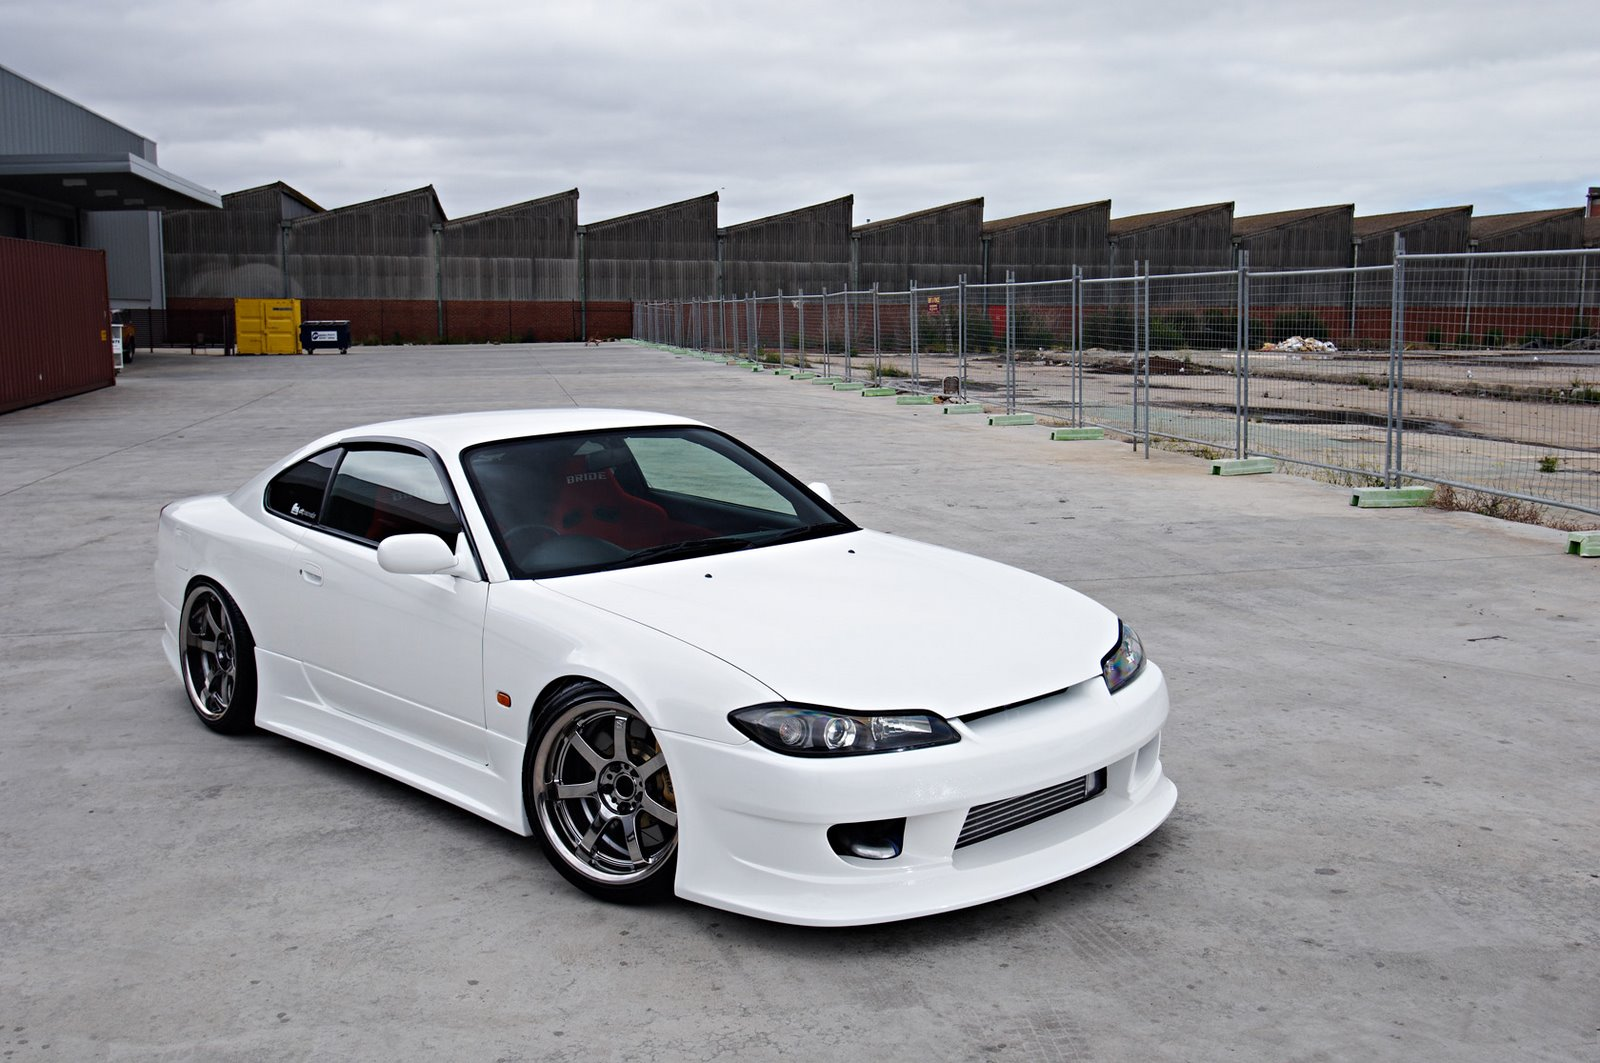 What About The Silvia S15?